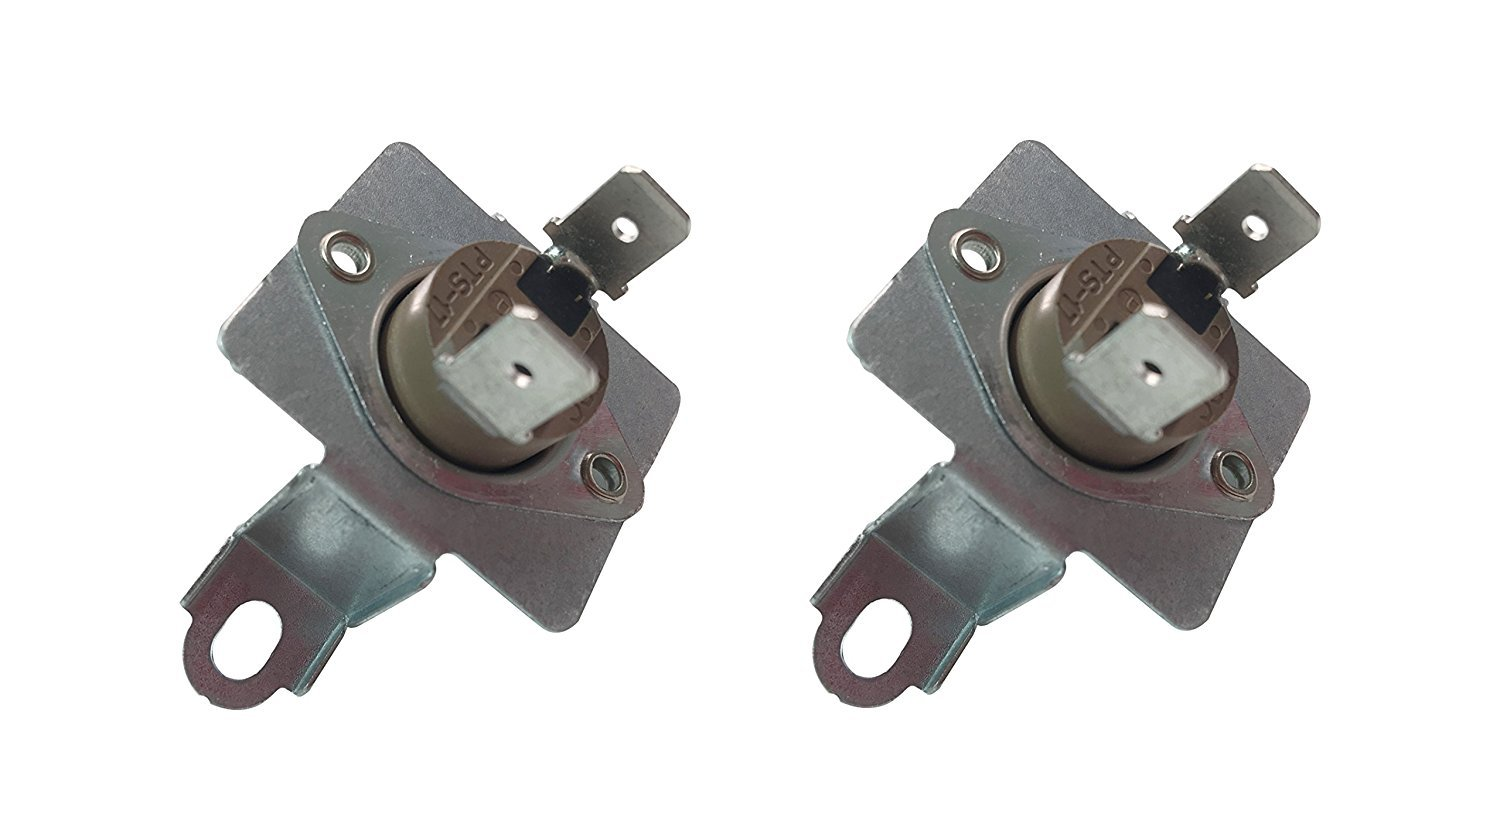 2 x SAMSUNG DC96-00887A Replacement Dryer Thermostat W/ Bracket 2074129